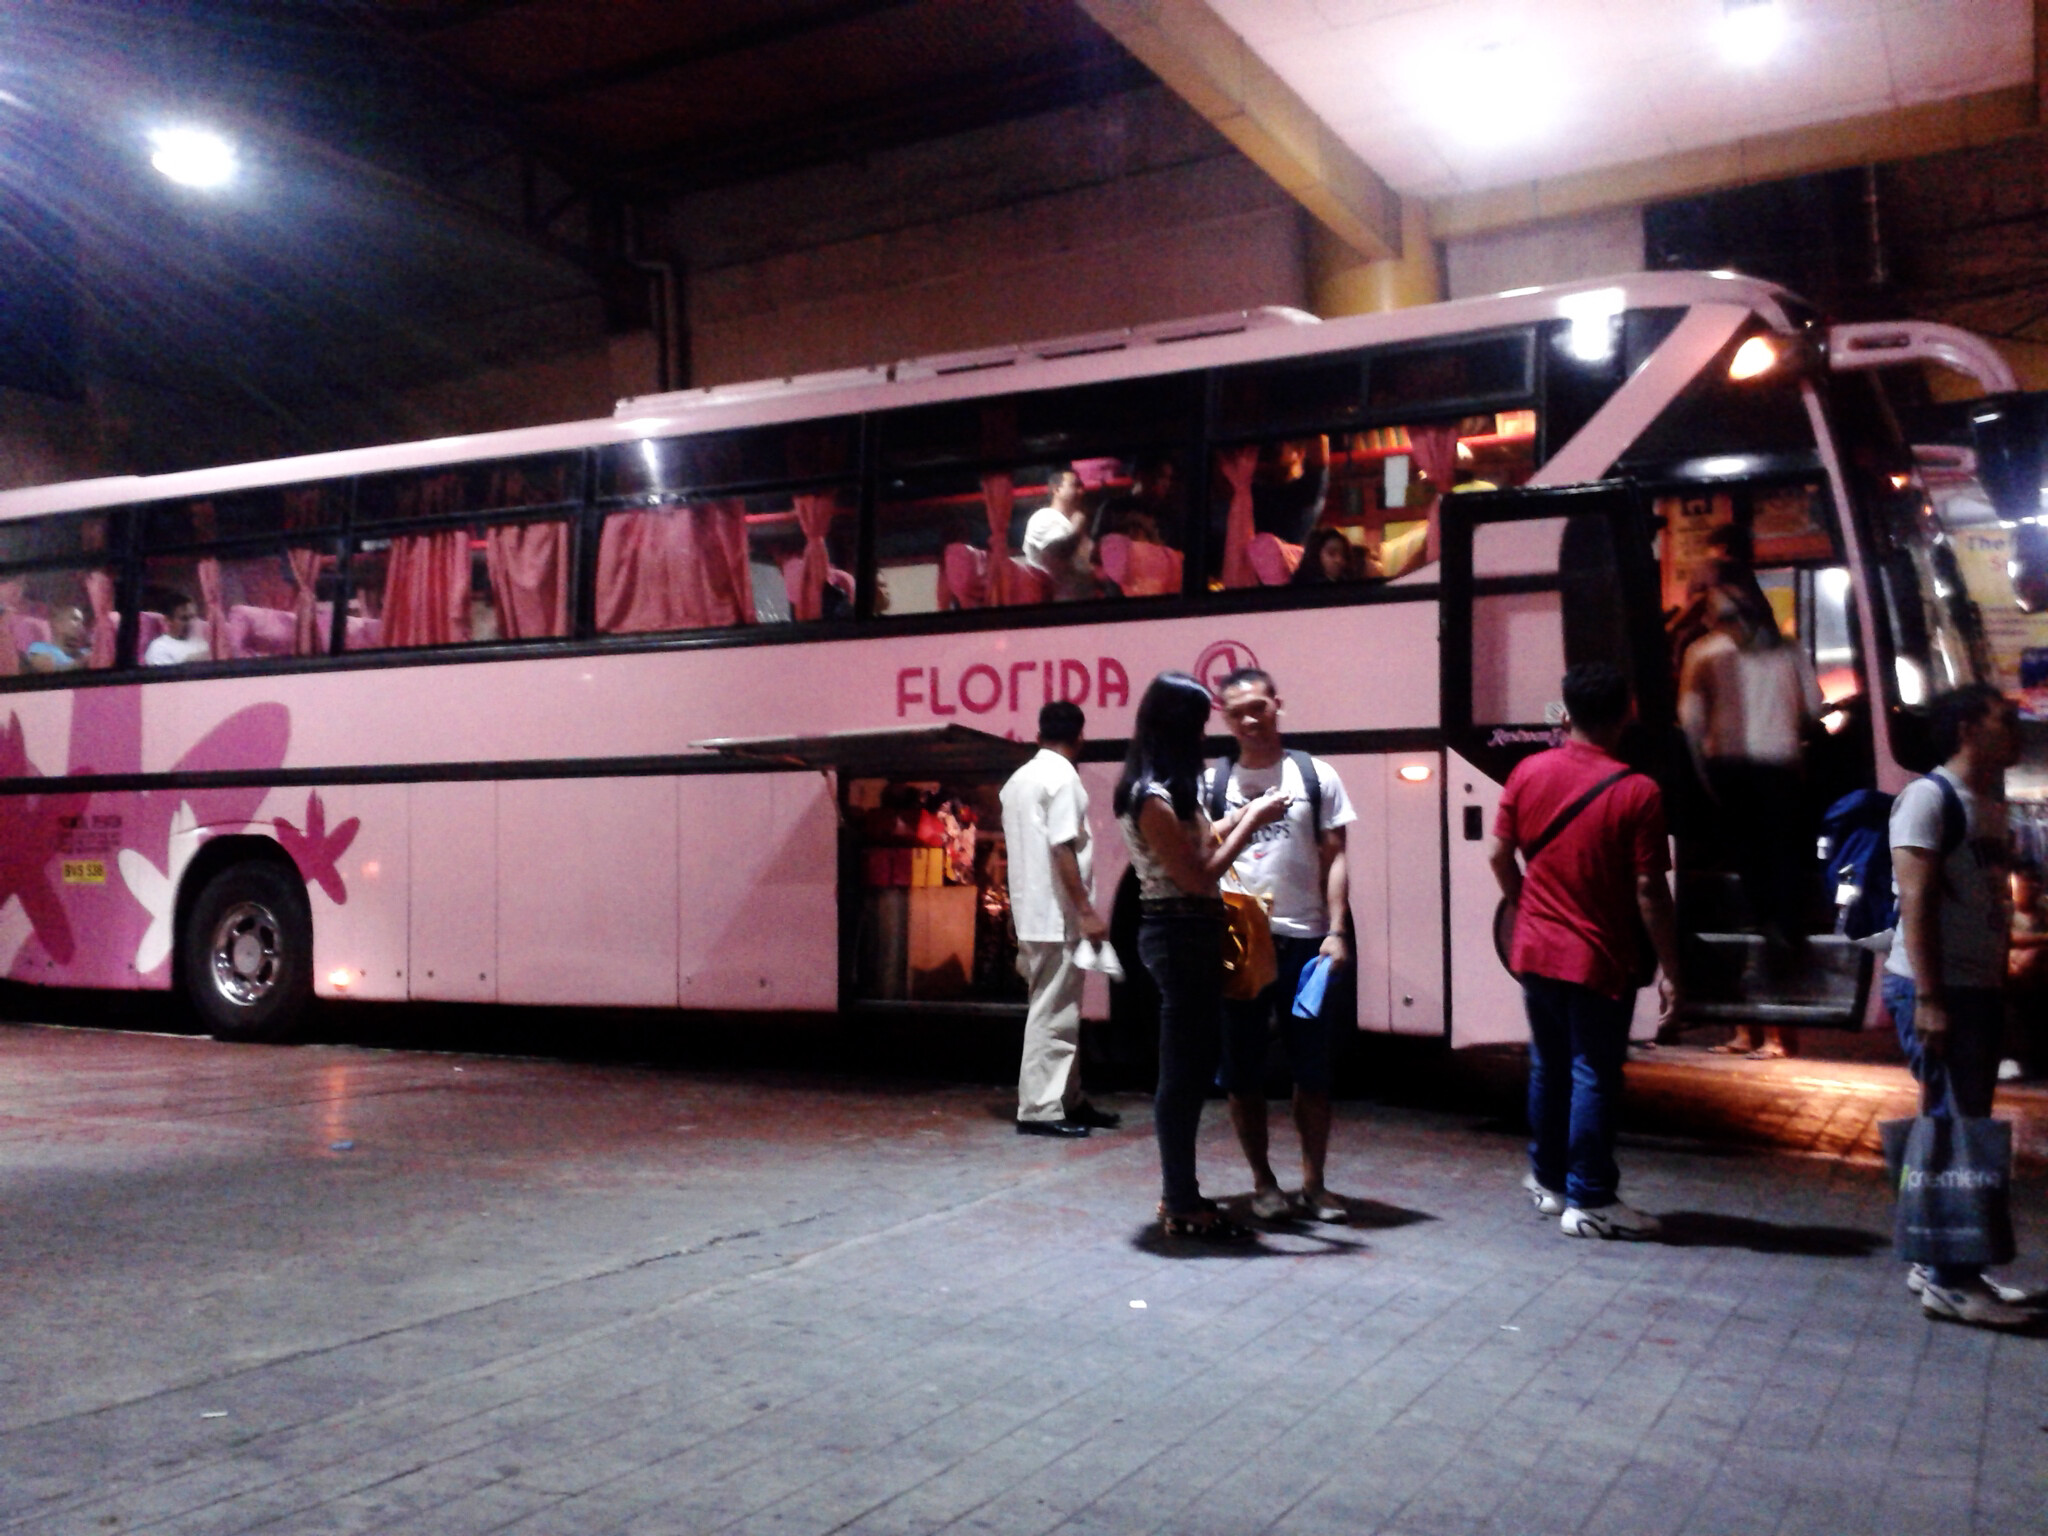 how to get to ilocos, florida bus